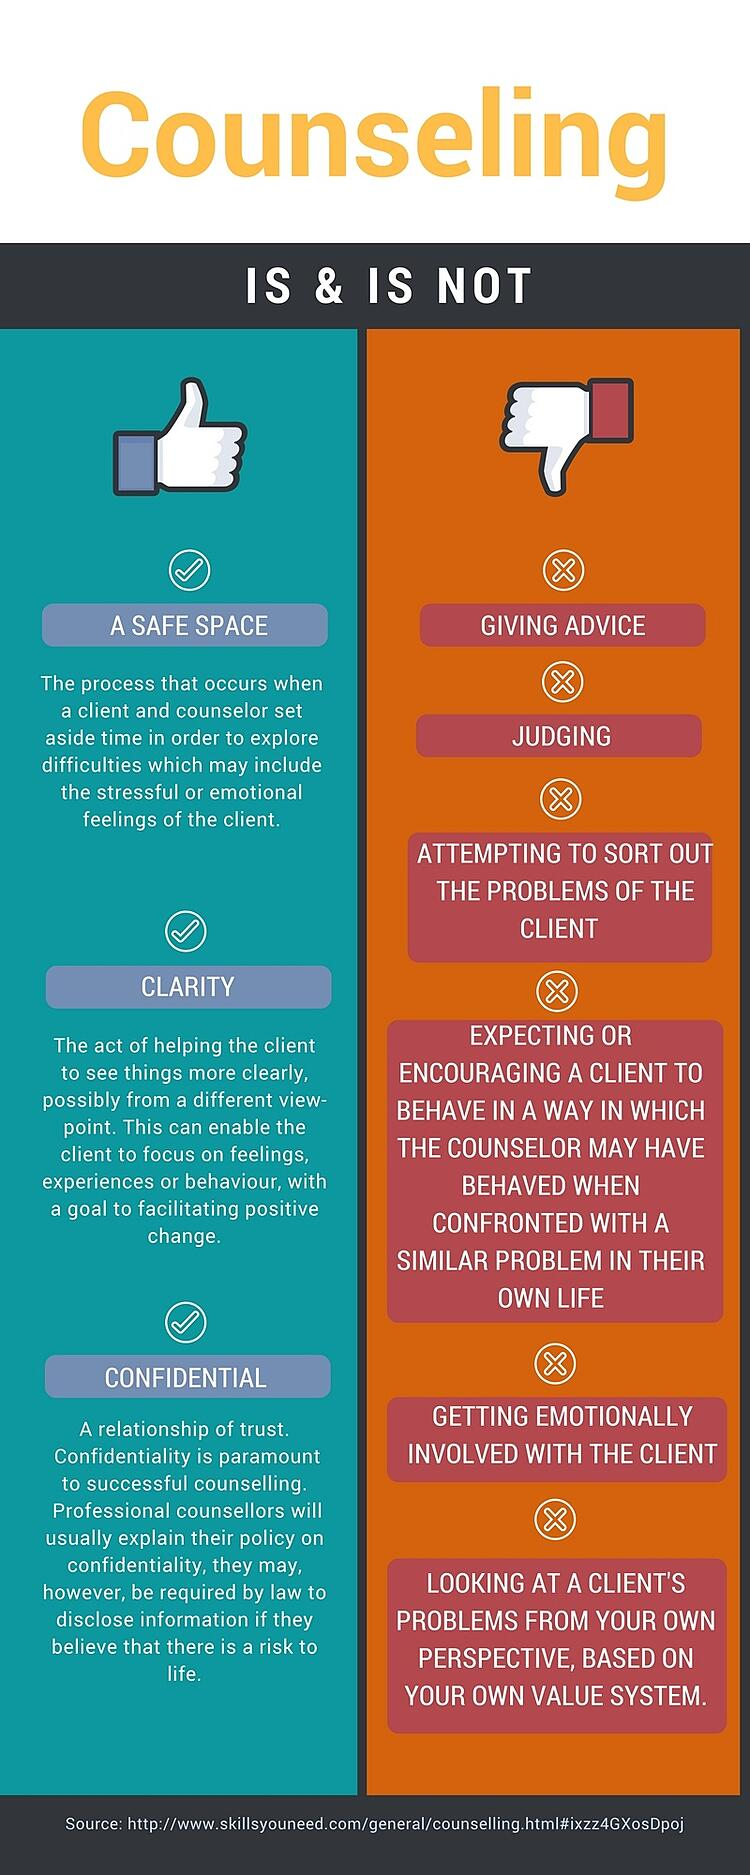 What are the benefits of counseling?